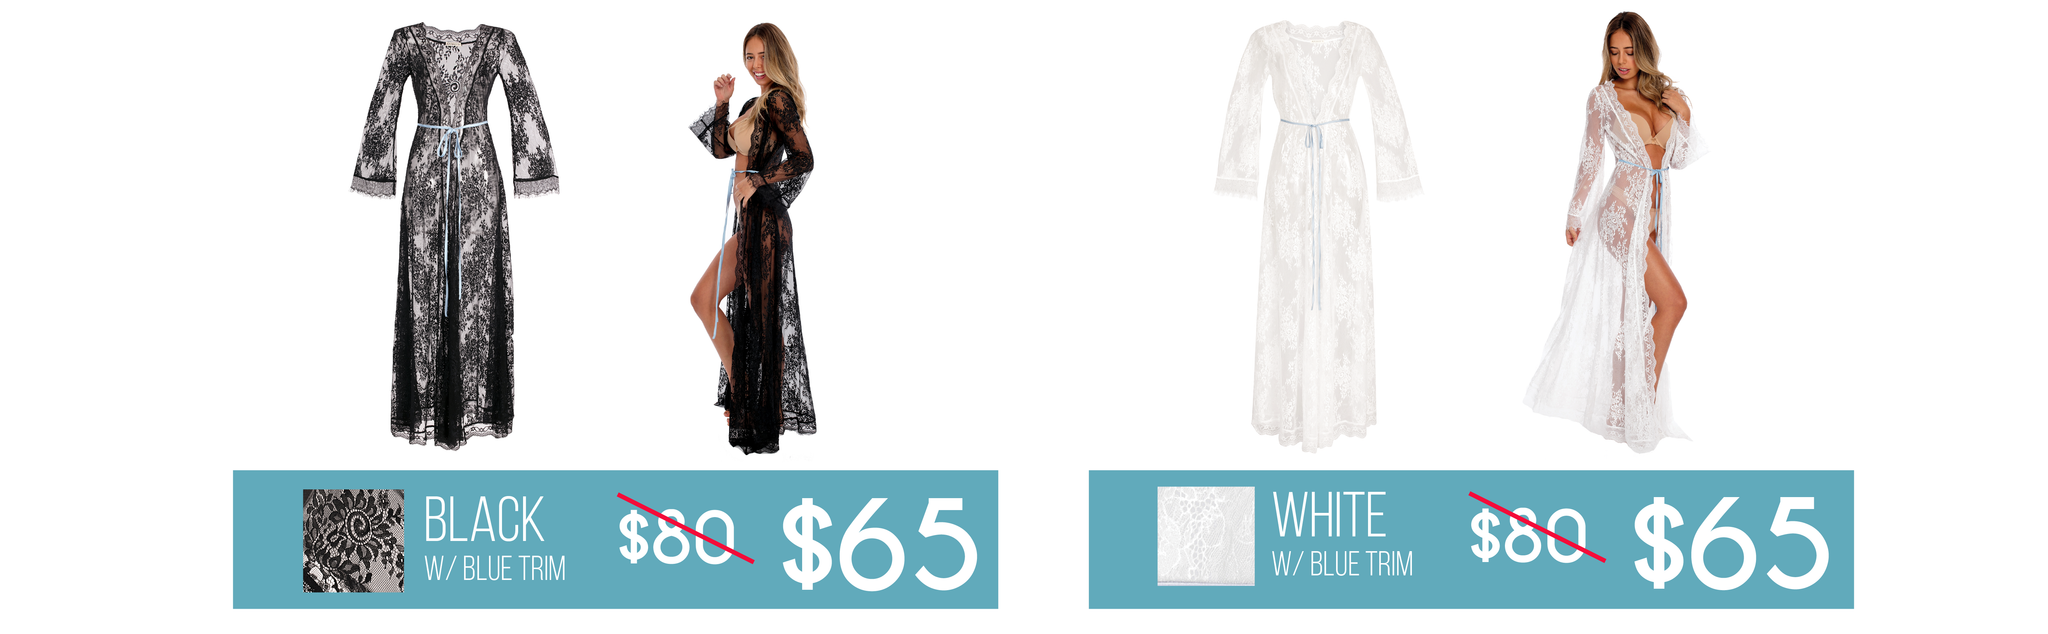 swimsuit coverup sale